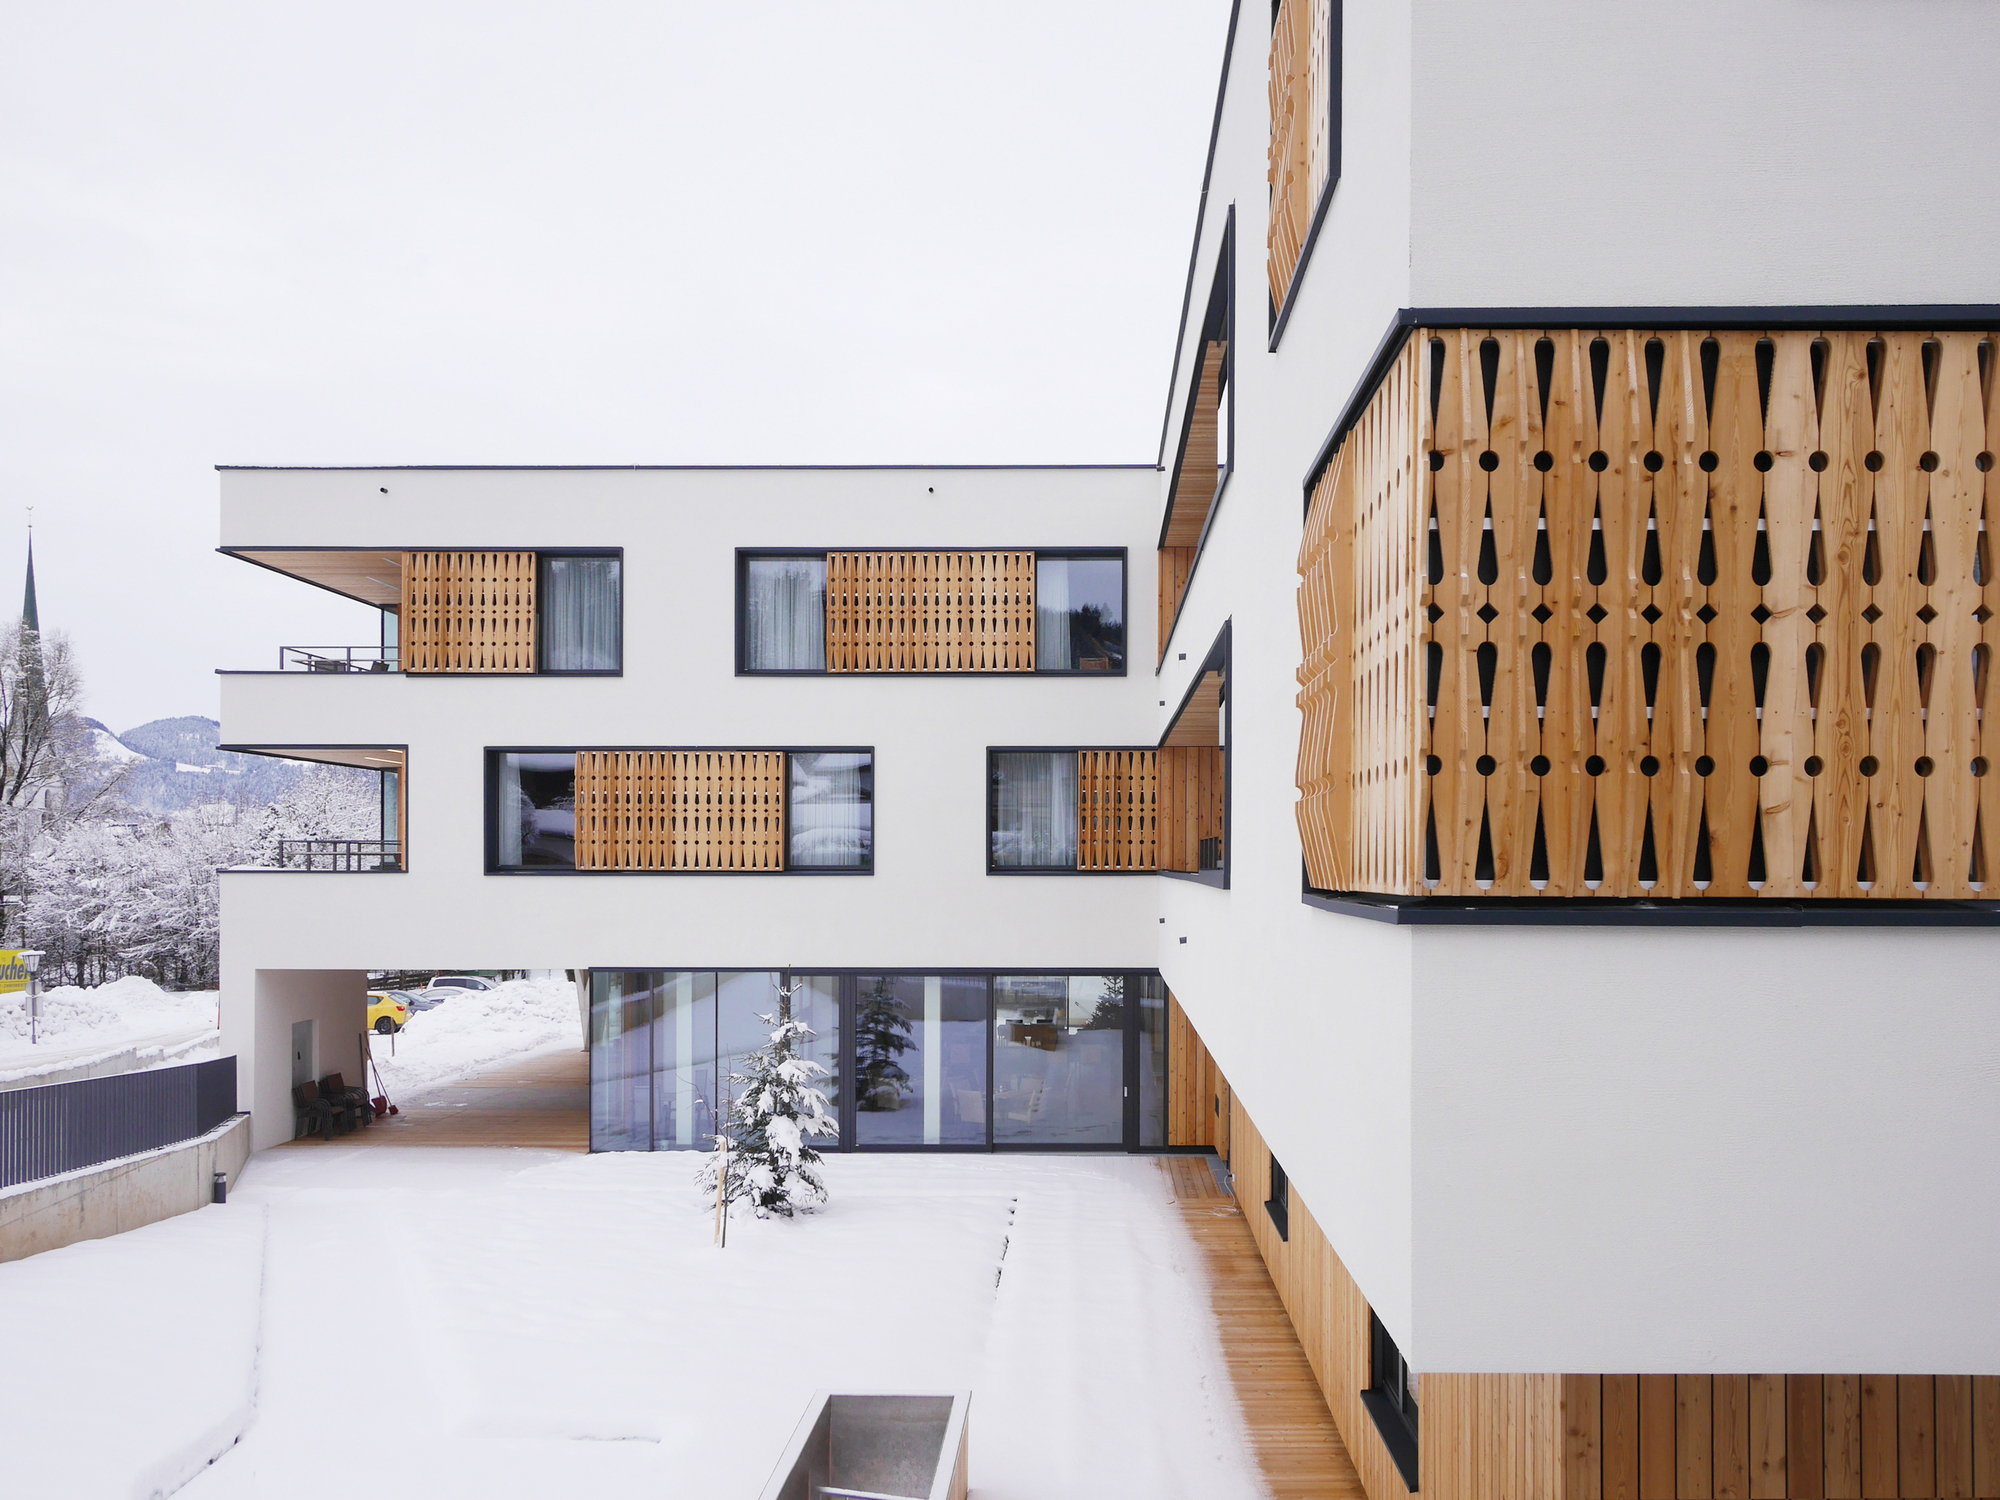 Retirement and nursing home wilder kaiser srap sedlak rissland d rschinger architekten - Durschinger architekten ...